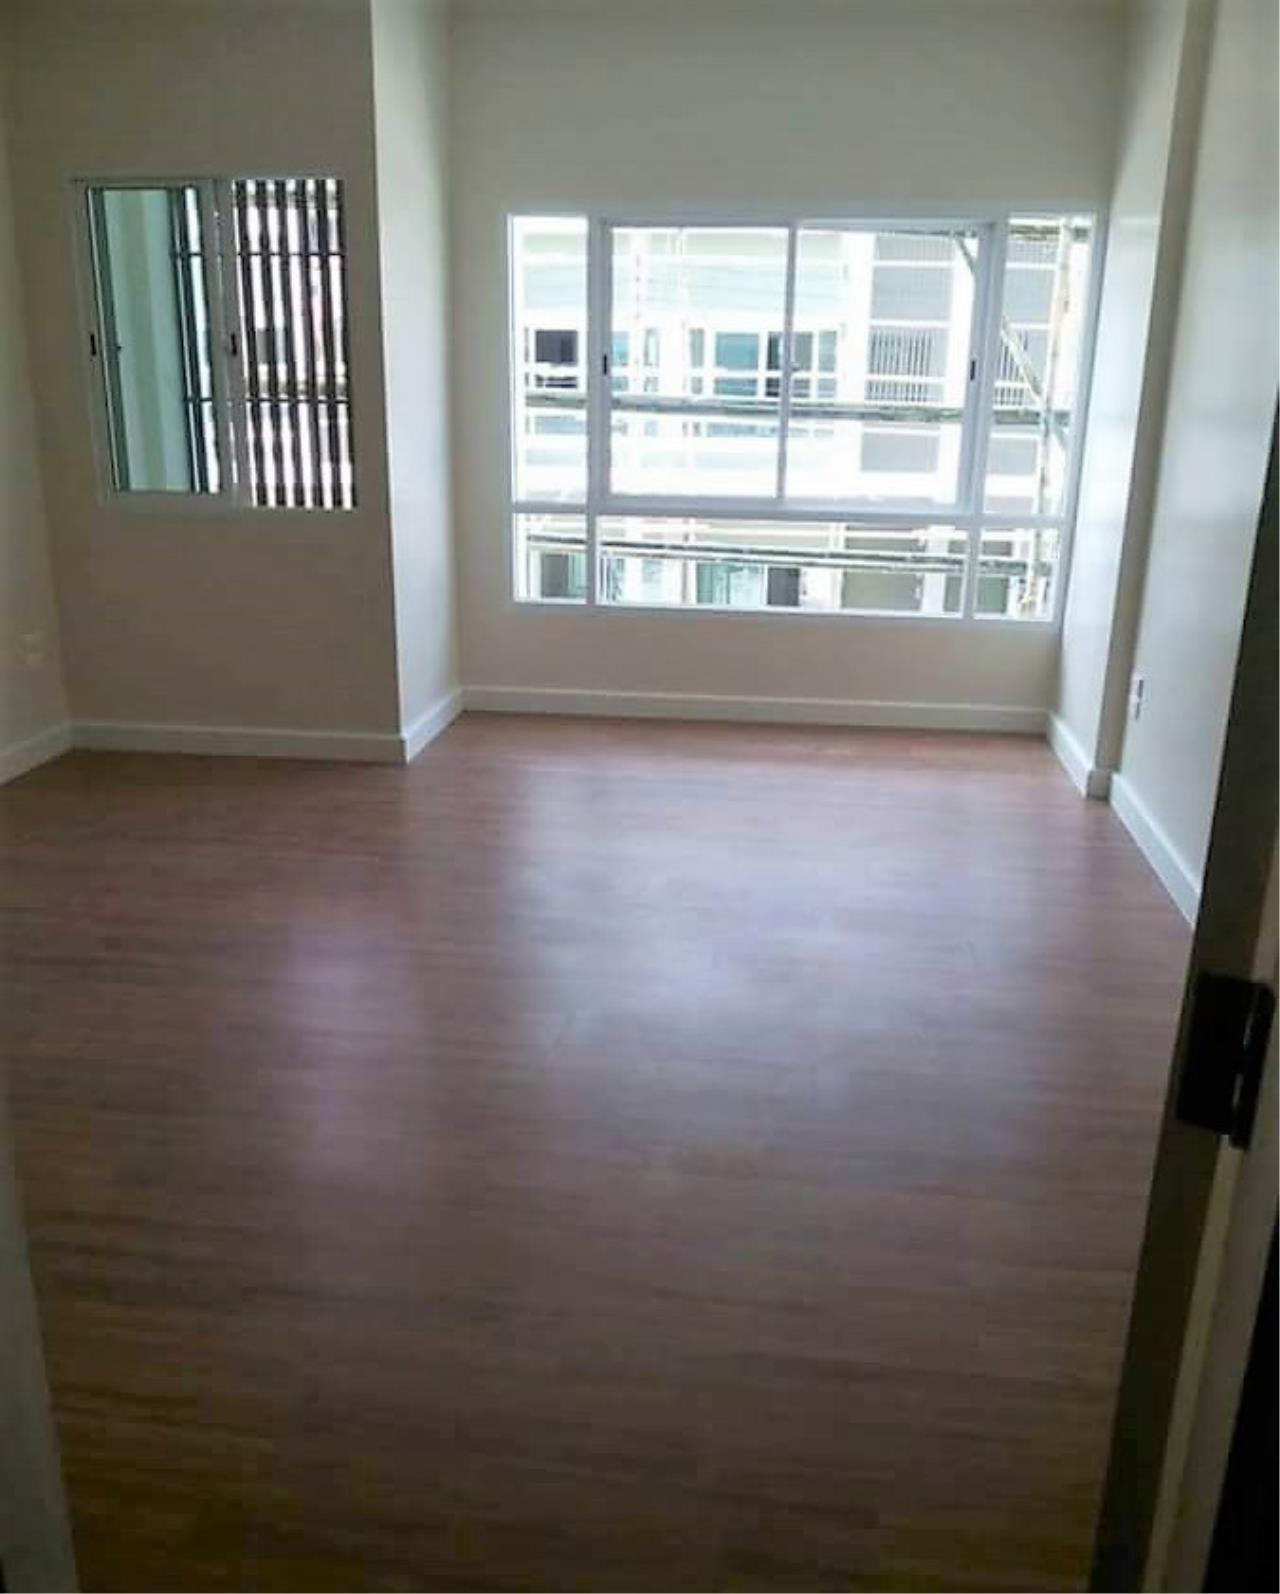 RE/MAX All Star Realty Agency's Townhouse Nalin Avenue 2 (Ramkamhaeng) for sale 3